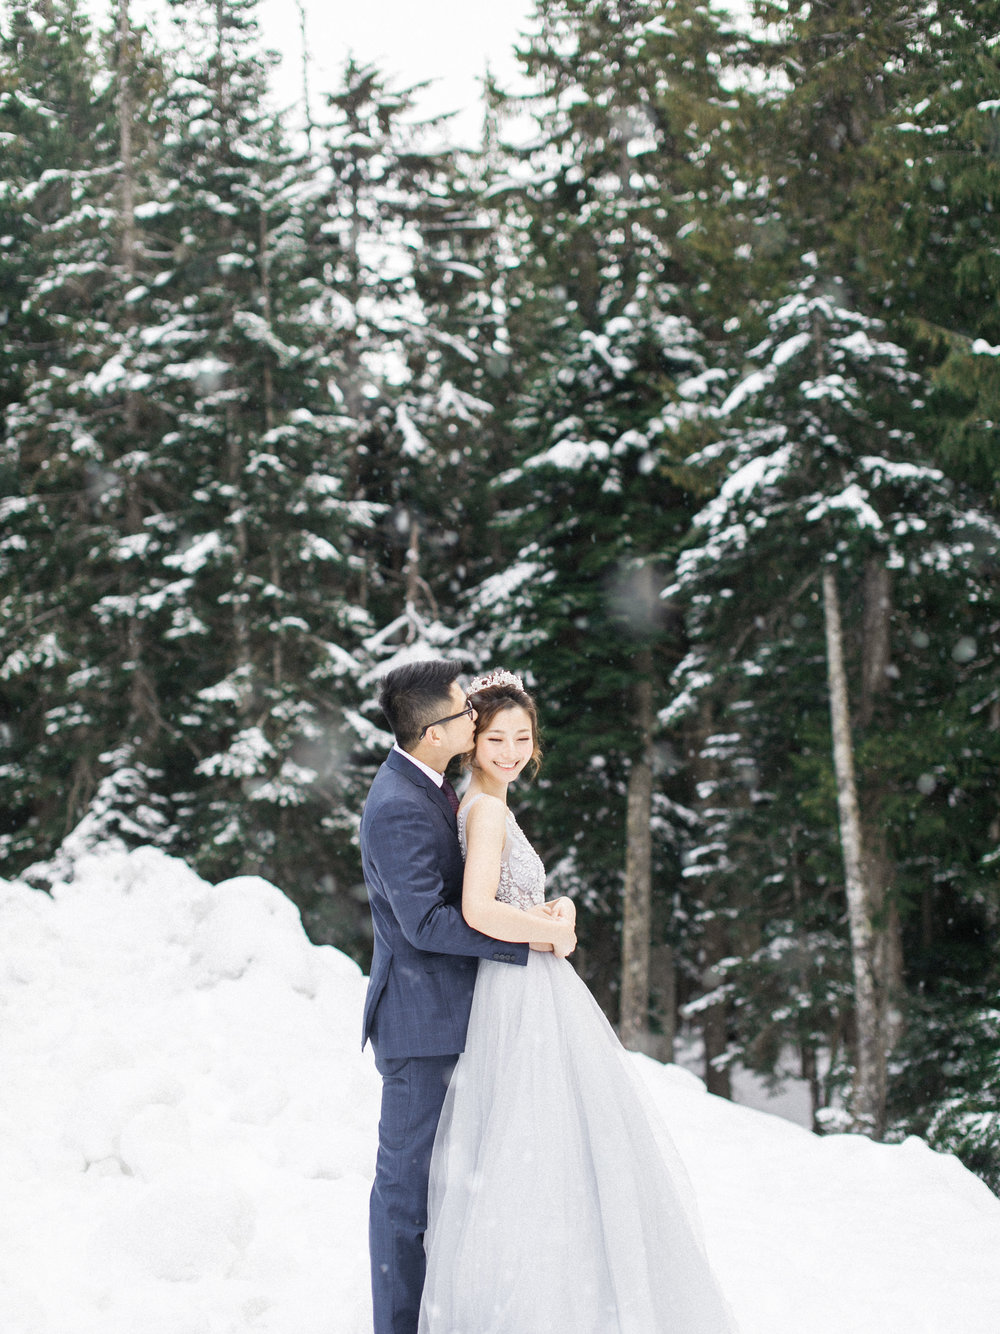 20170225LeslyJerryPreWedding-6 copy.jpg